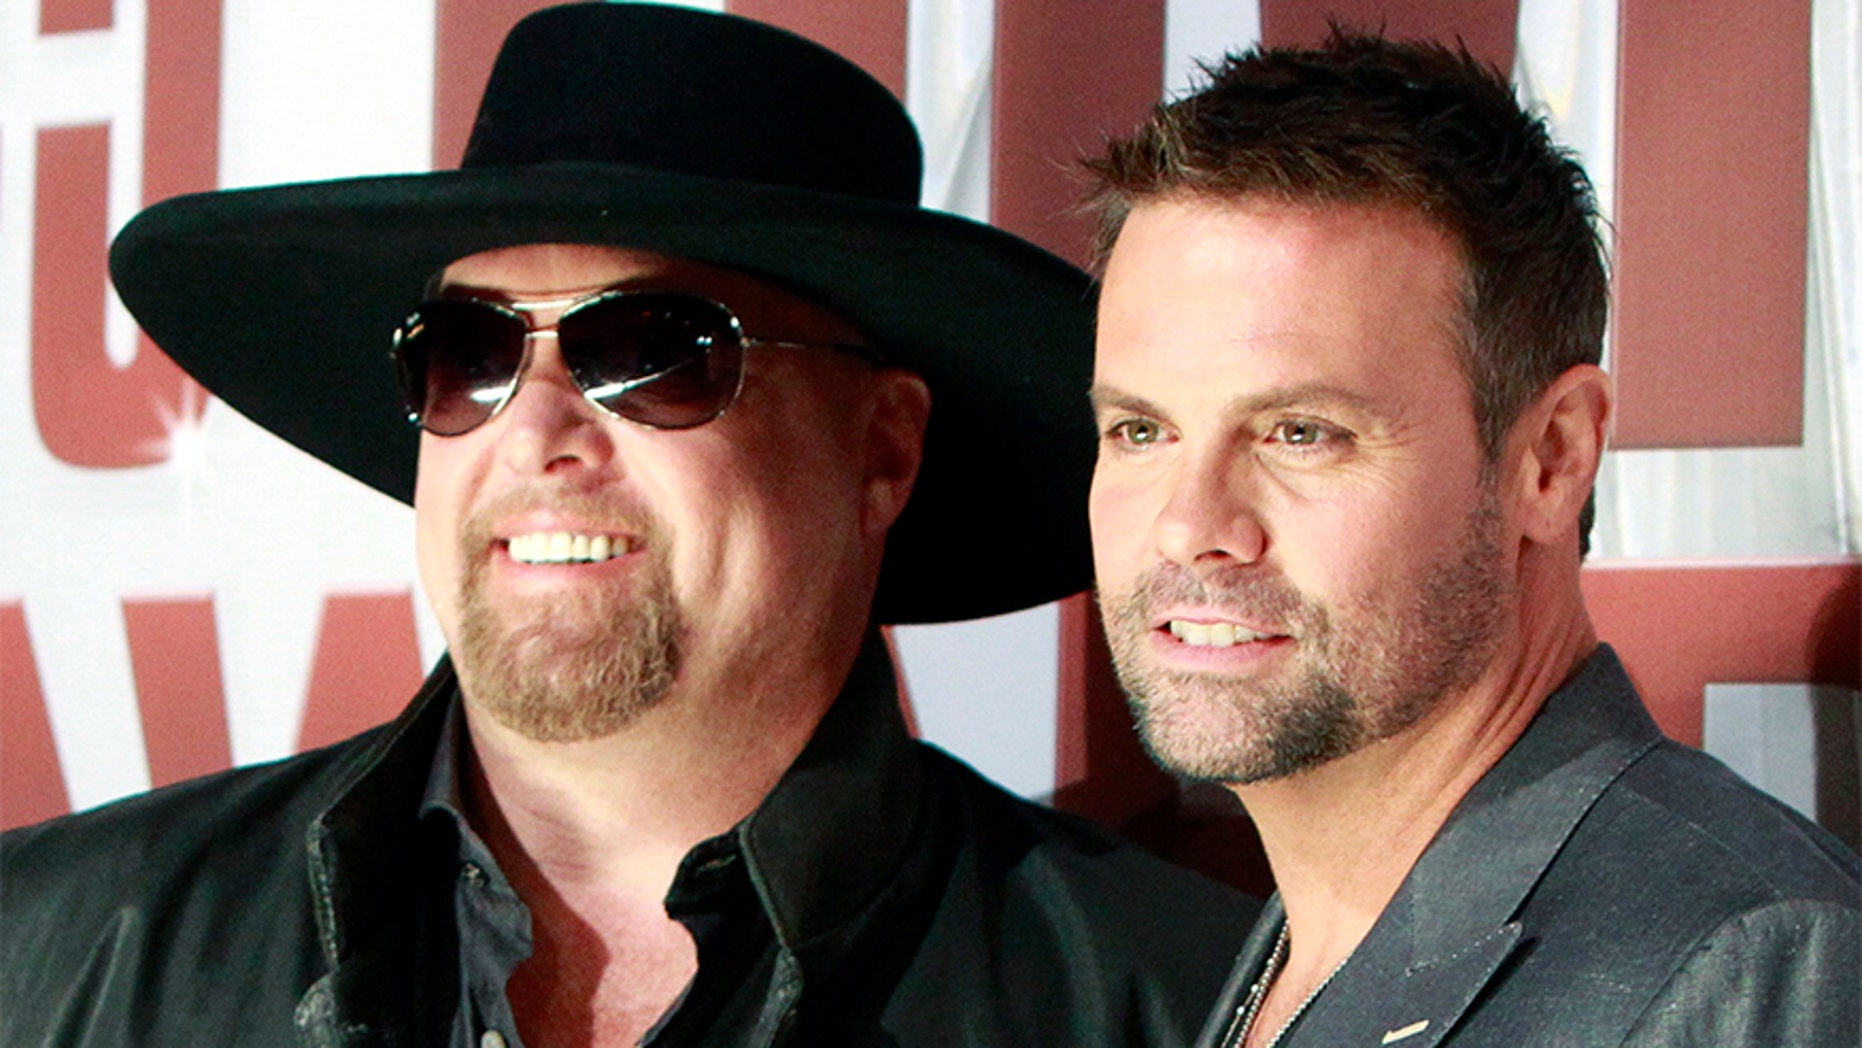 Country music duo Montgomery Gentry, Eddie Montgomery (L) and Troy Gentry, arrives at the 45th Country Music Association Awards in Nashville, Tennessee November 9, 2011. REUTERS/Harrison McClary (UNITED STATES - Tags: ENTERTAINMENT) - GF2E7BA022001